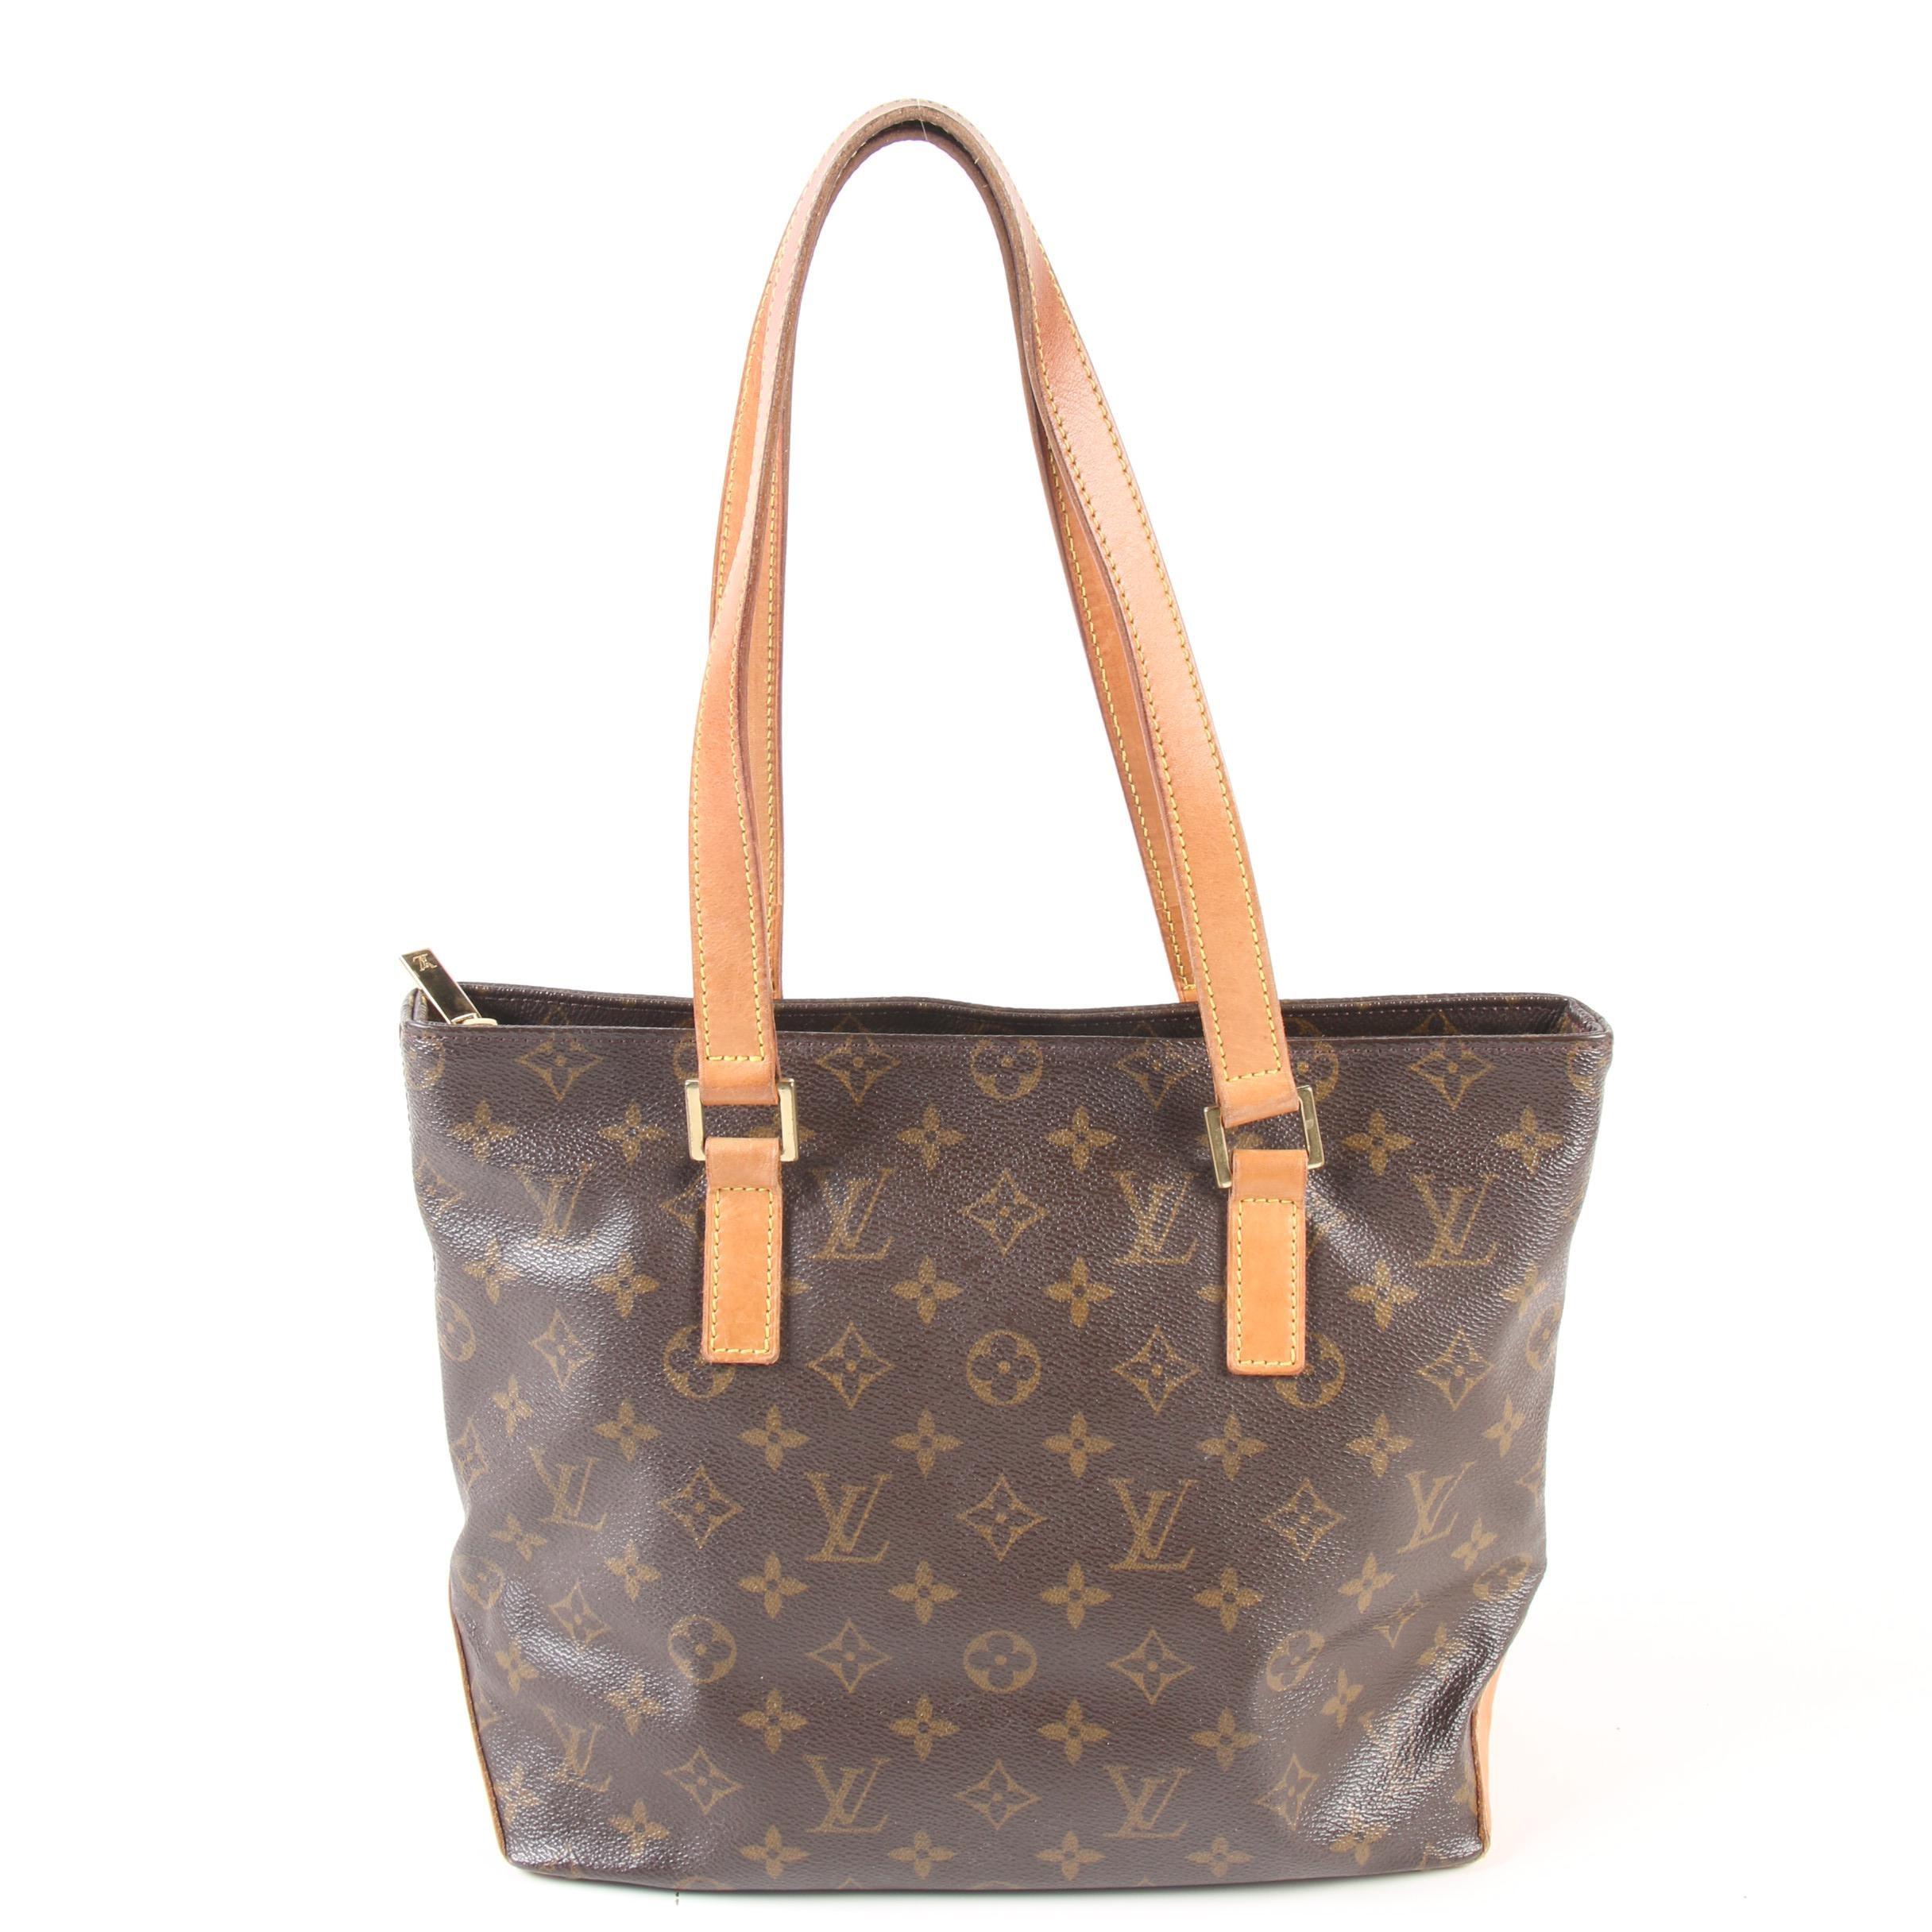 Louis Vuitton Paris Cabas Piano Shoulder Bag in Monogram Canvas